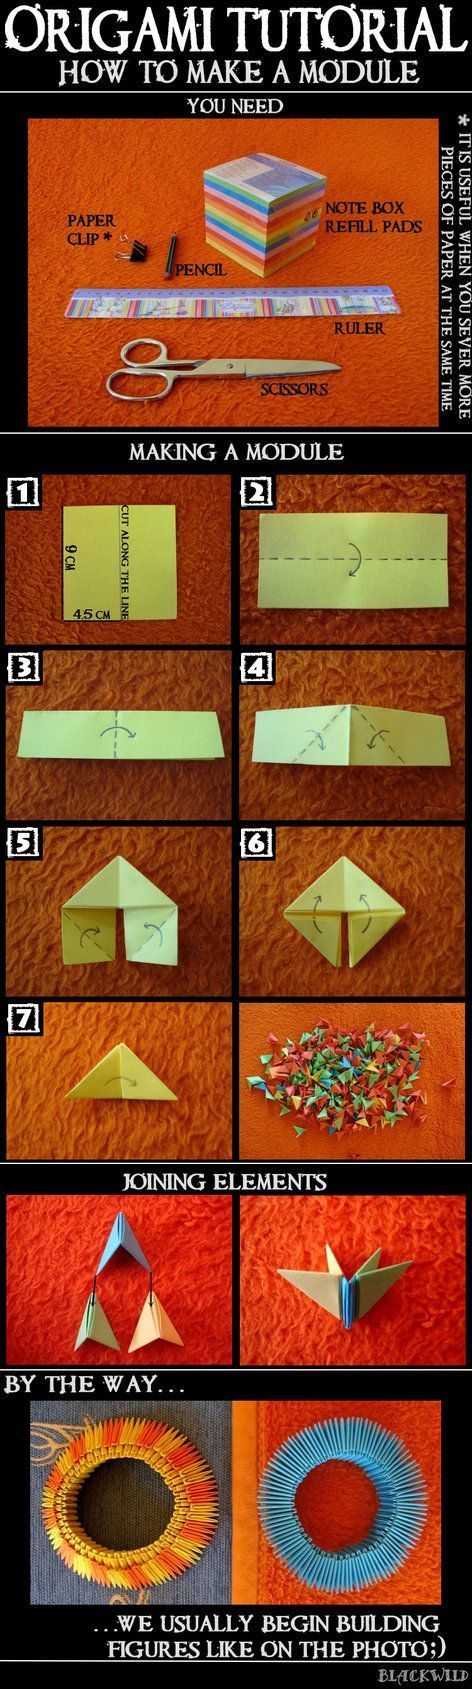 Origami Tutorial - Module by blackwild on DeviantArt  Origami Tutorial – Módulo por ~ blackwild on deviantART  #blackwild #DeviantArt #Module #Origami #tutorial